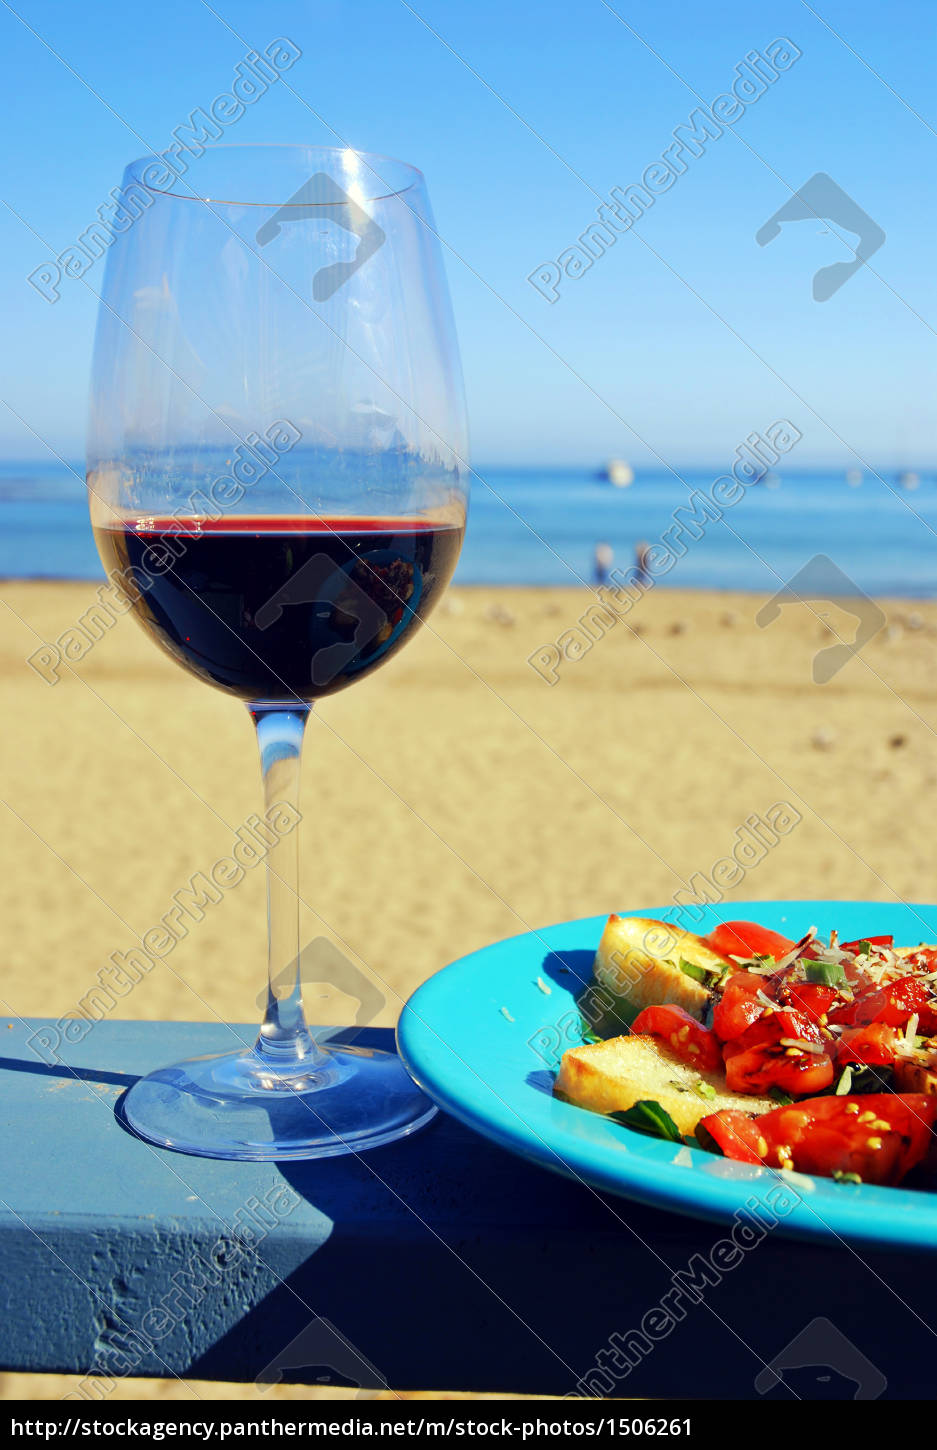 red, wine, and, bruschetta - 1506261